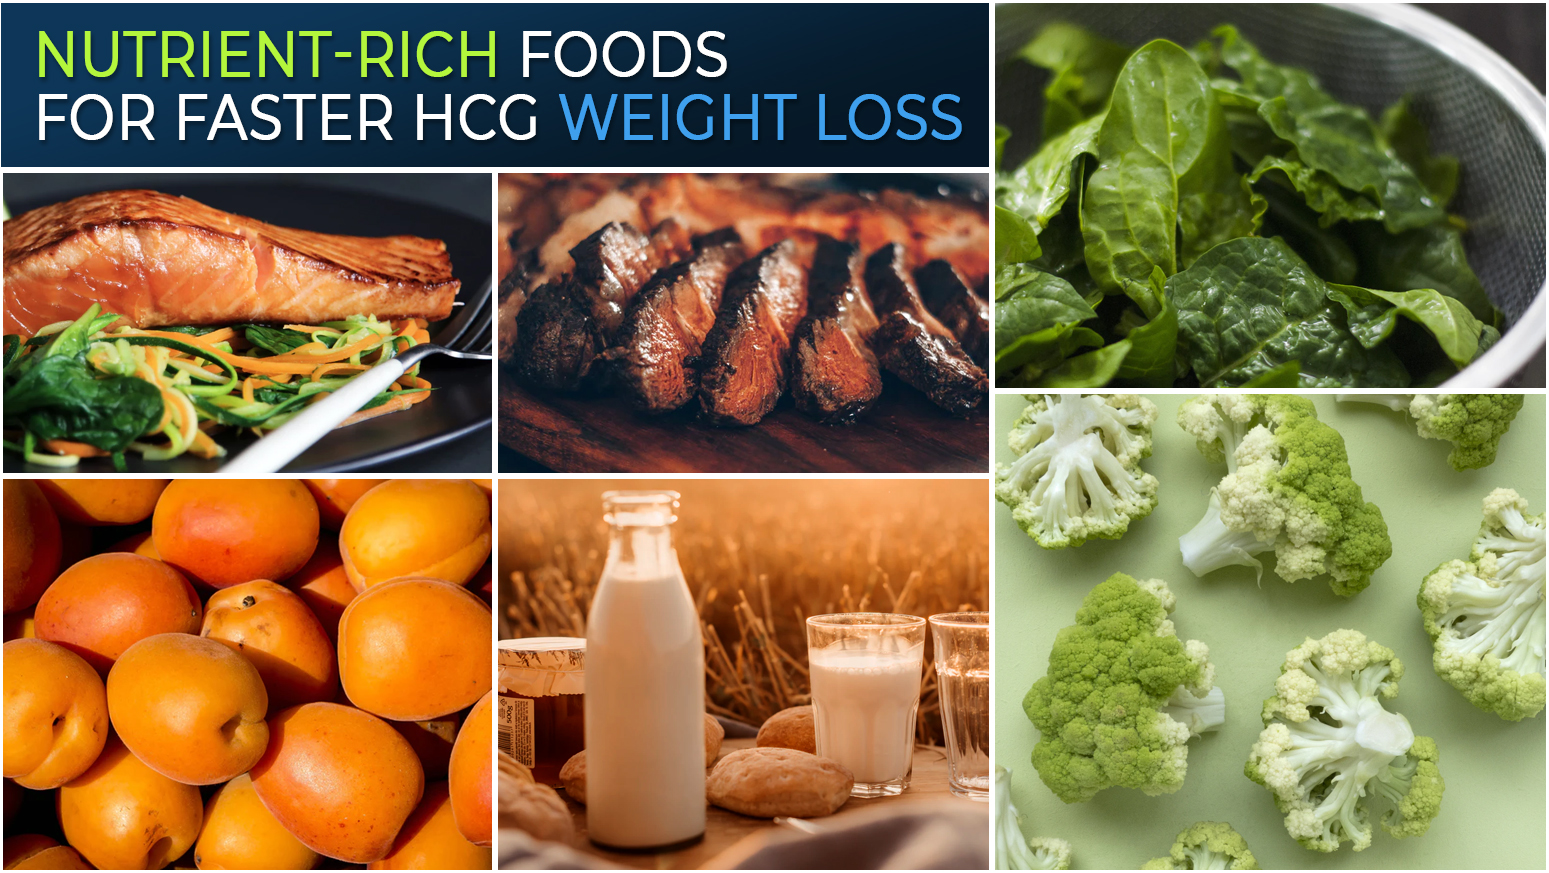 NUTRIENT-RICH FOODS FOR FASTER HCG WEIGHT LOSS